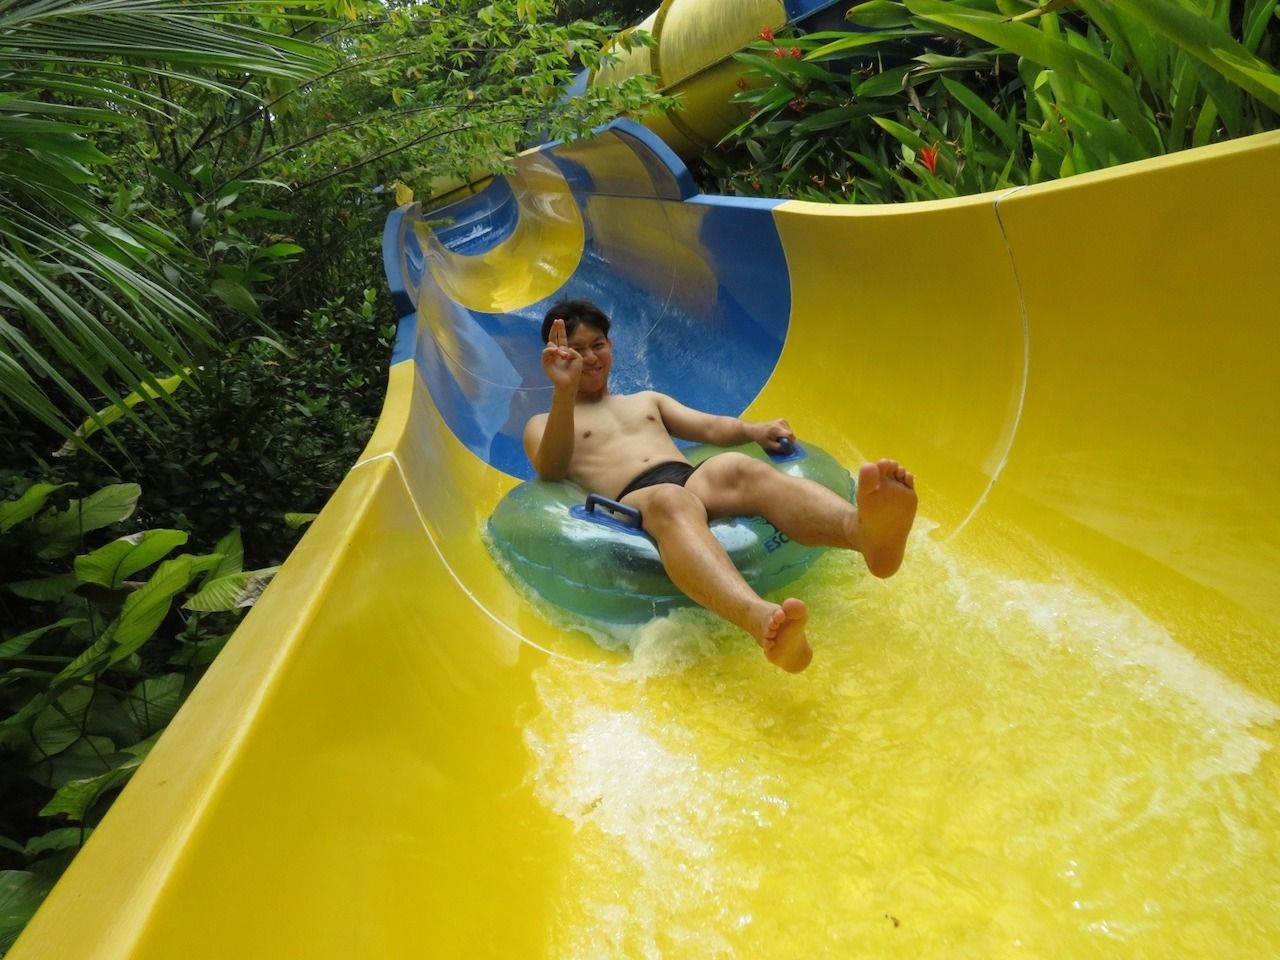 Person on waterslide